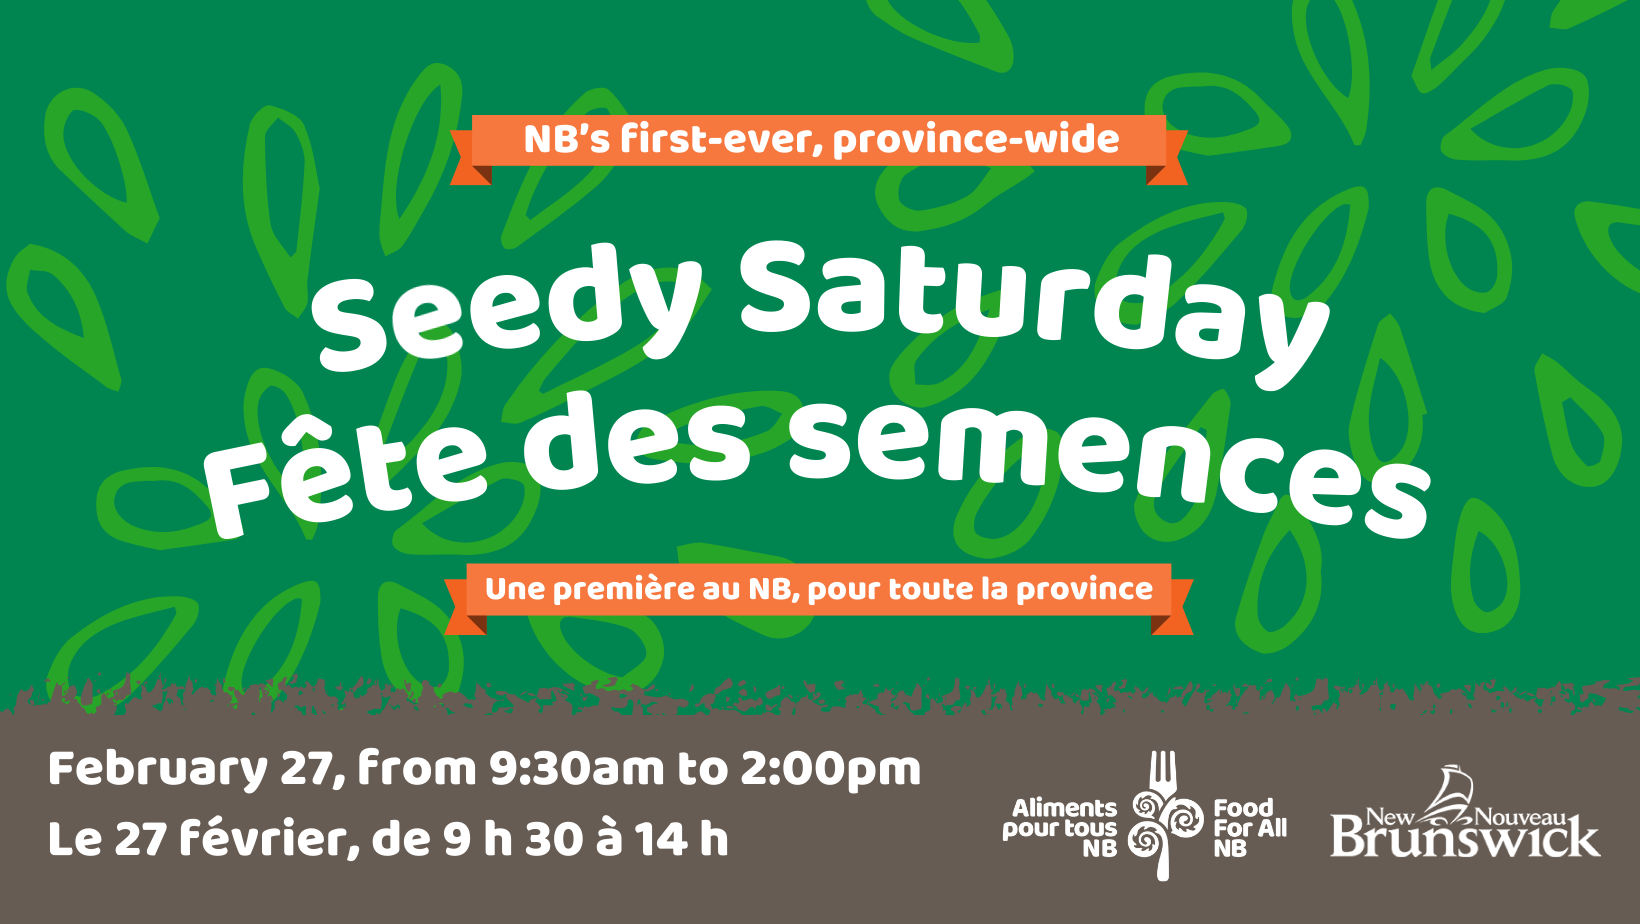 Province-wide Seedy Saturday